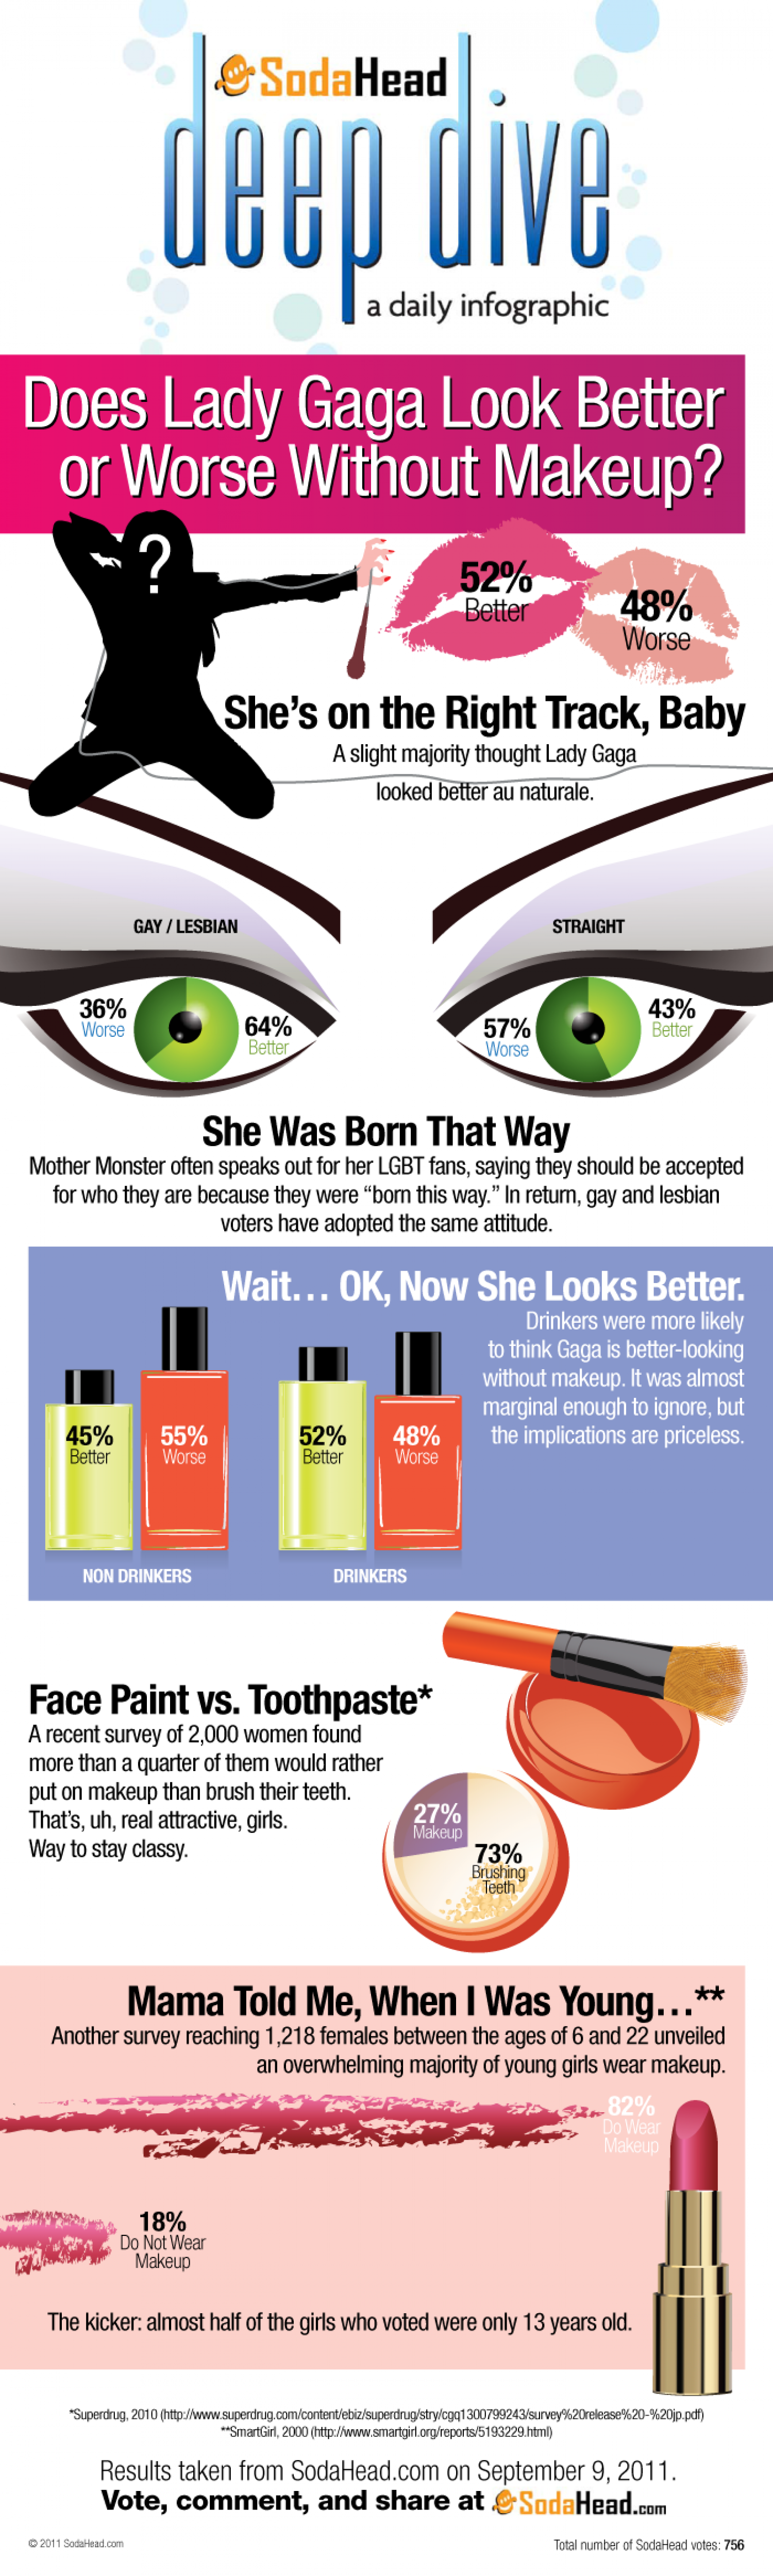 Does Lady Gaga Look Better or Worse Without Makeup? Infographic